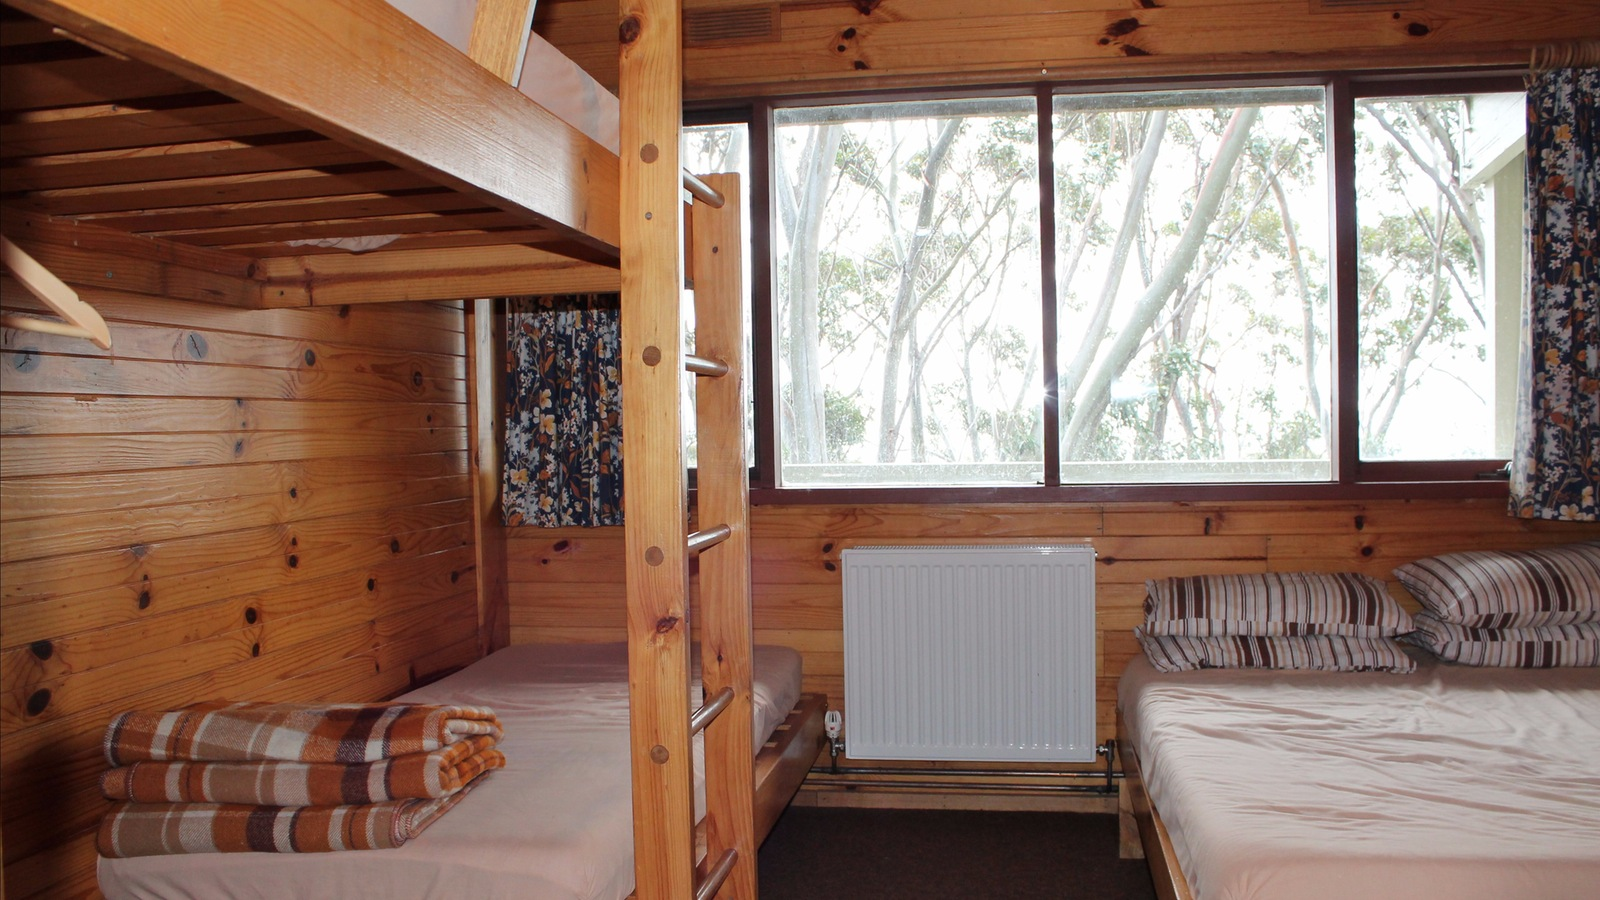 A room at Edski Lodge, a double bed with a set of single bunks with a view of snowgums out the windo